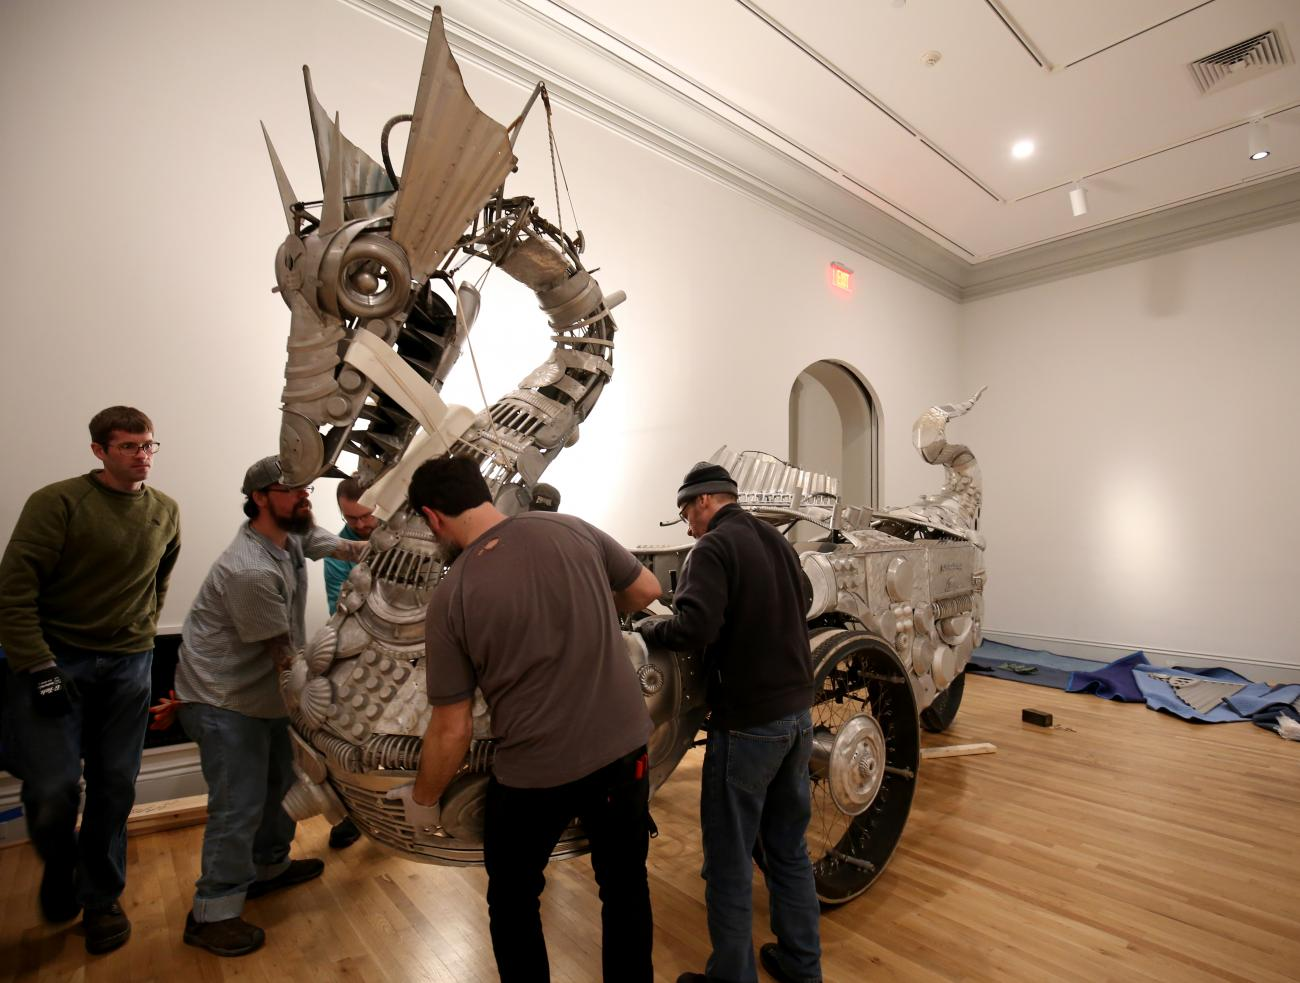 The museum team and artist working to assemble the dragon